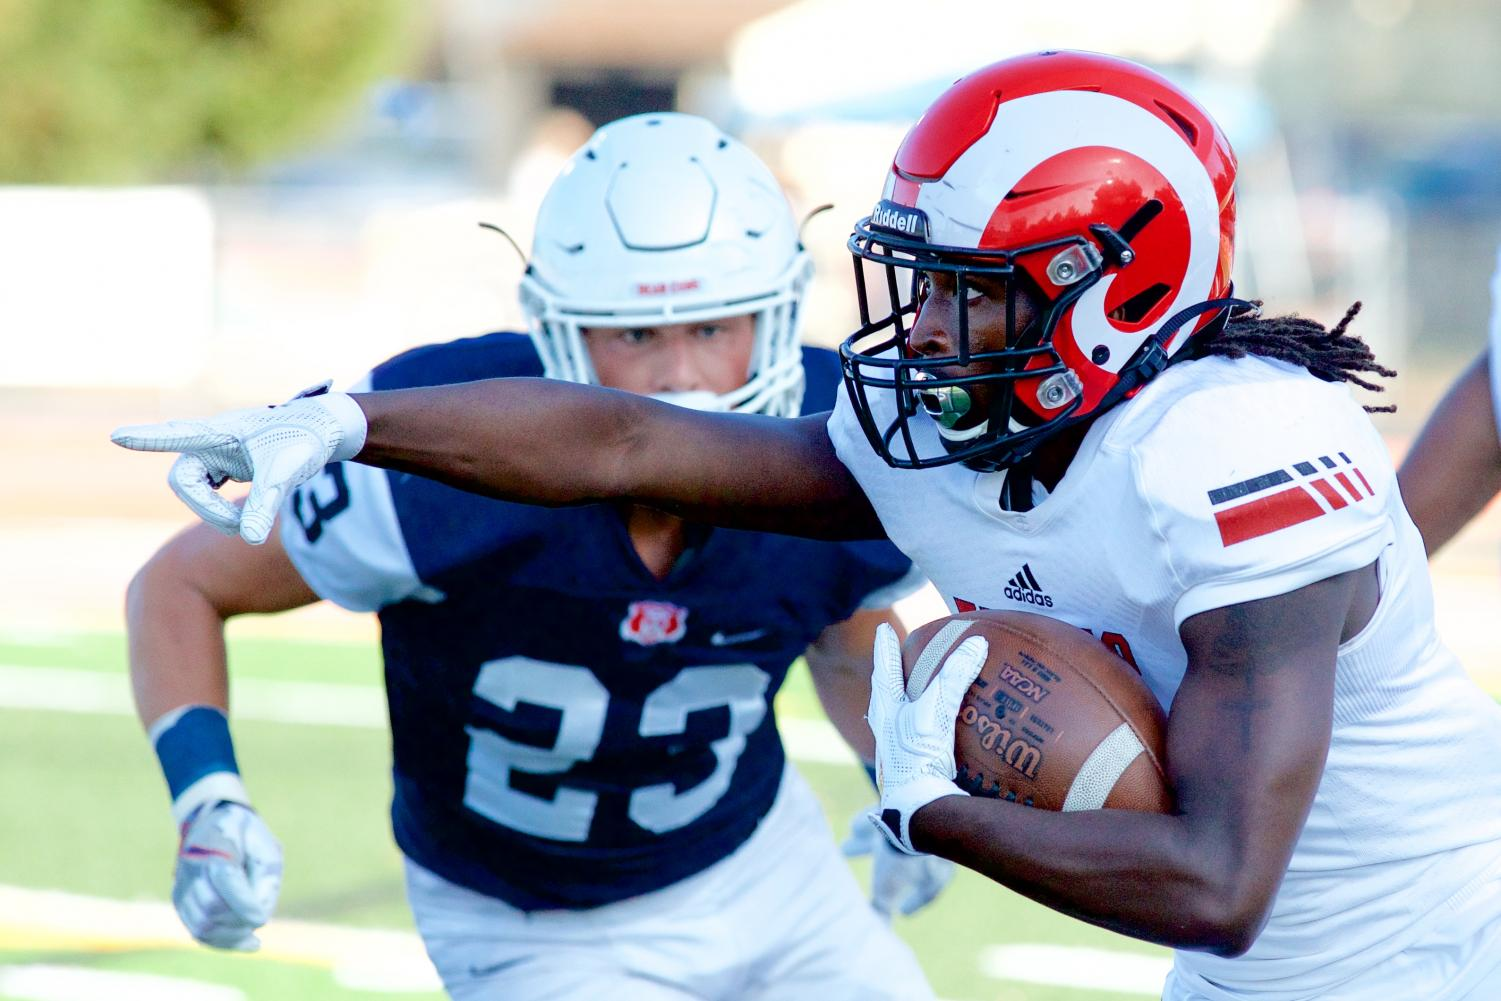 Fresno City wide receiver Michael Gates (3) directs traffic down field after a reception in the 2019 season opener at the Santa Rosa High School football field September 7 in Santa Rosa.